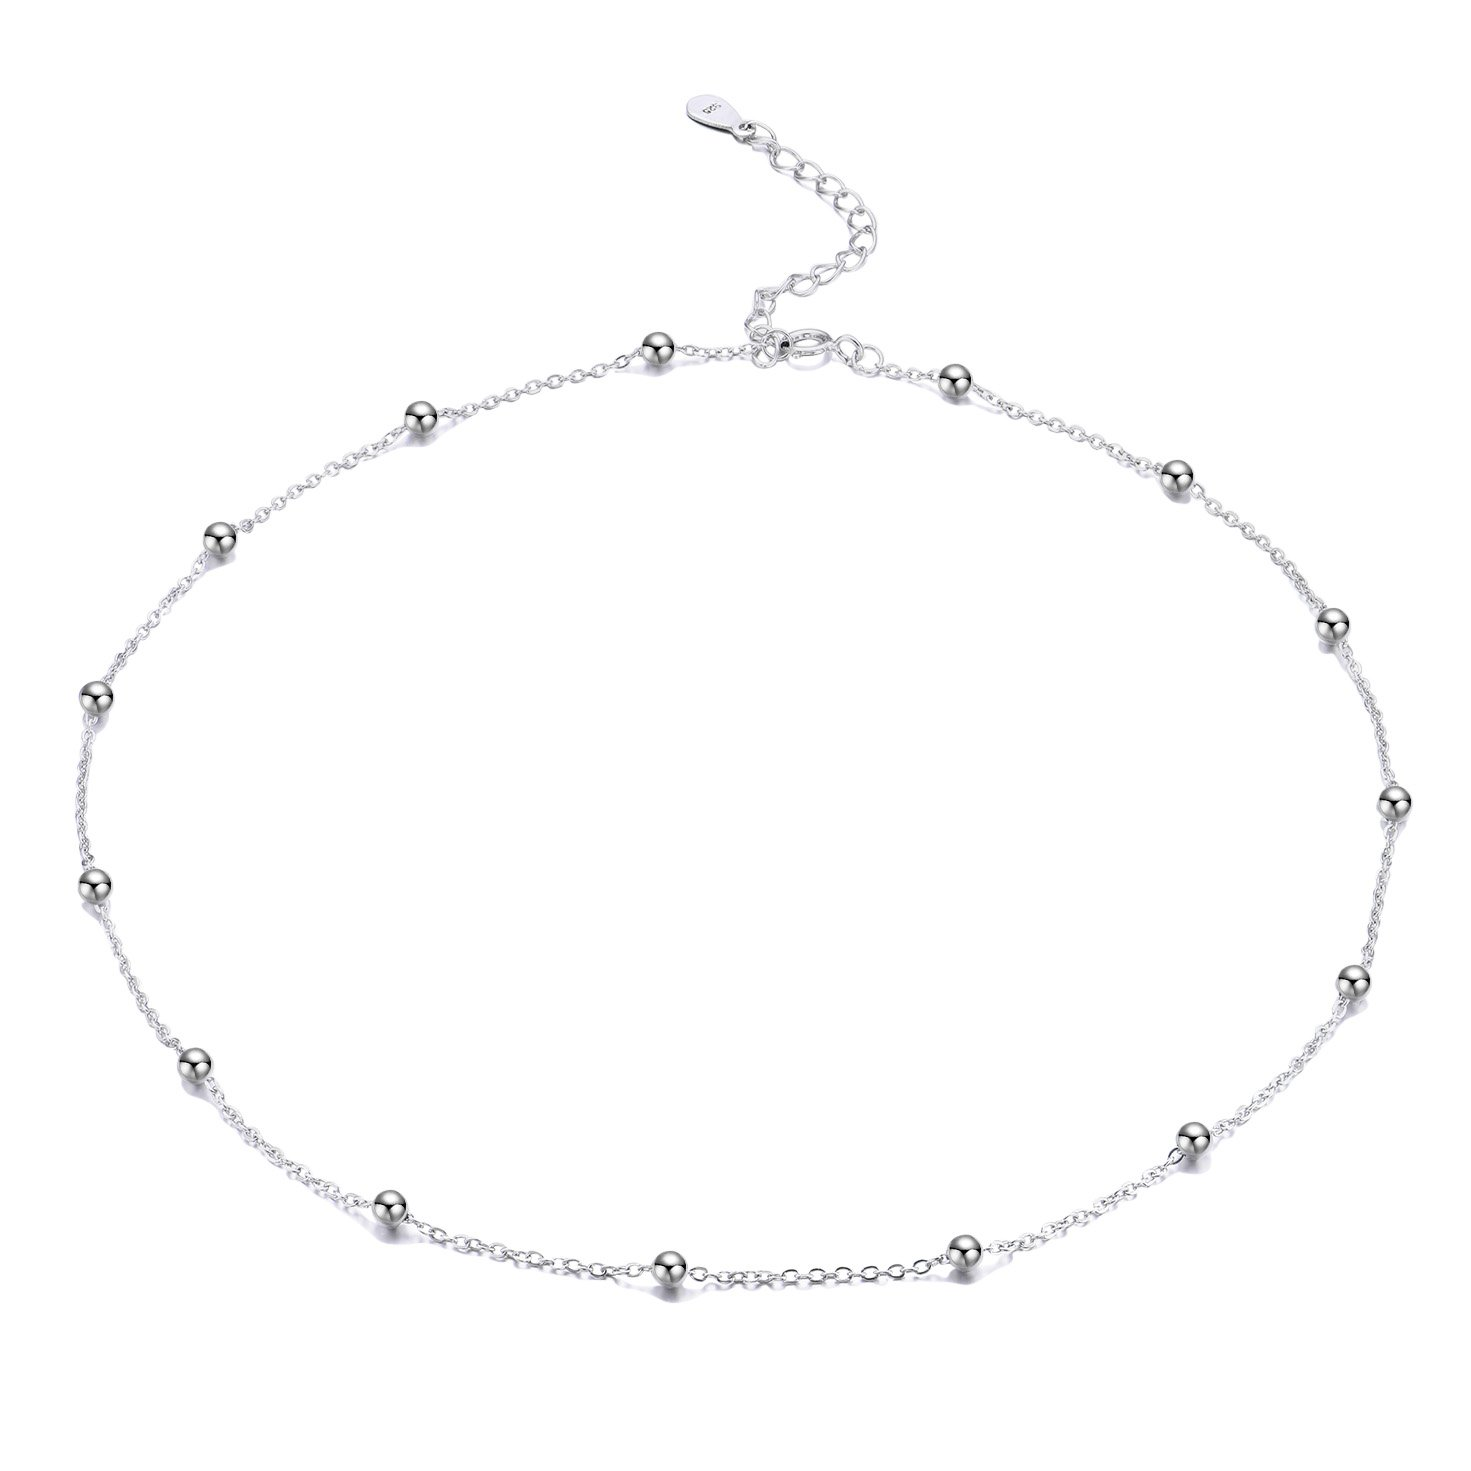 FOROLAV Women's 925 Sterling Silver Beaded Cable Chain Choker Necklace Adjustable, 13.7''